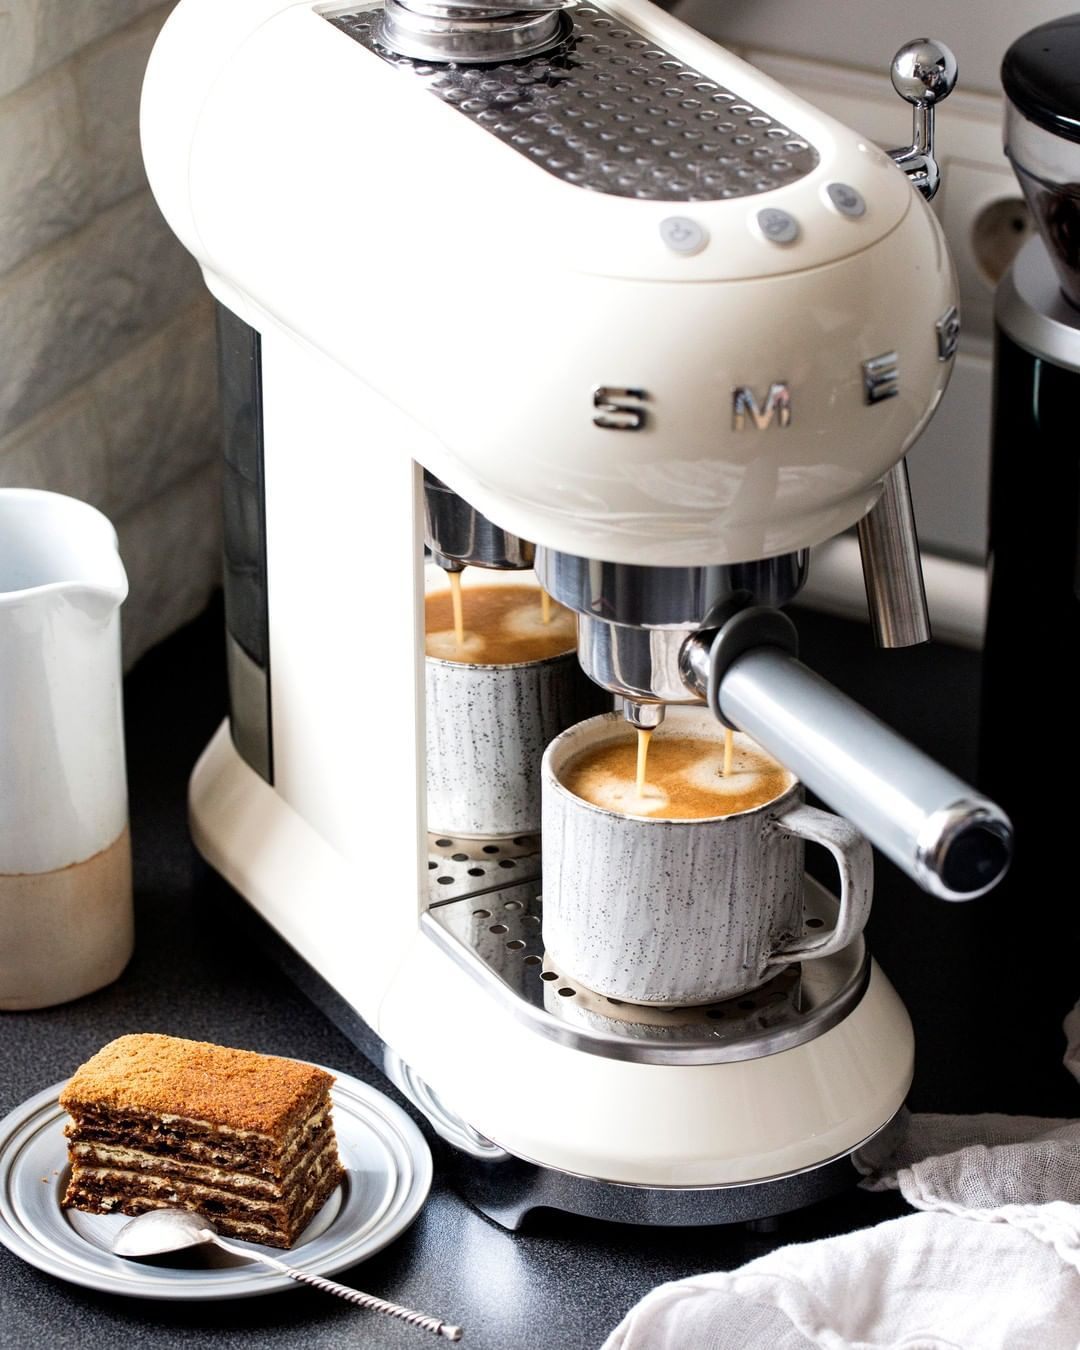 Our 50's Retro Style Espresso Machine is a compact and iconic design. Did you know that you can use coffee grounds and paper pods to prepare your favourite coffee? The perfect way to have coffee at home. #coffeetime #cafe #coffeelover #coffeeaddict #coffeeshop #espresso #coffeegram #smeg #appliance #interiordesign #design #home #homedecor #espressoathome